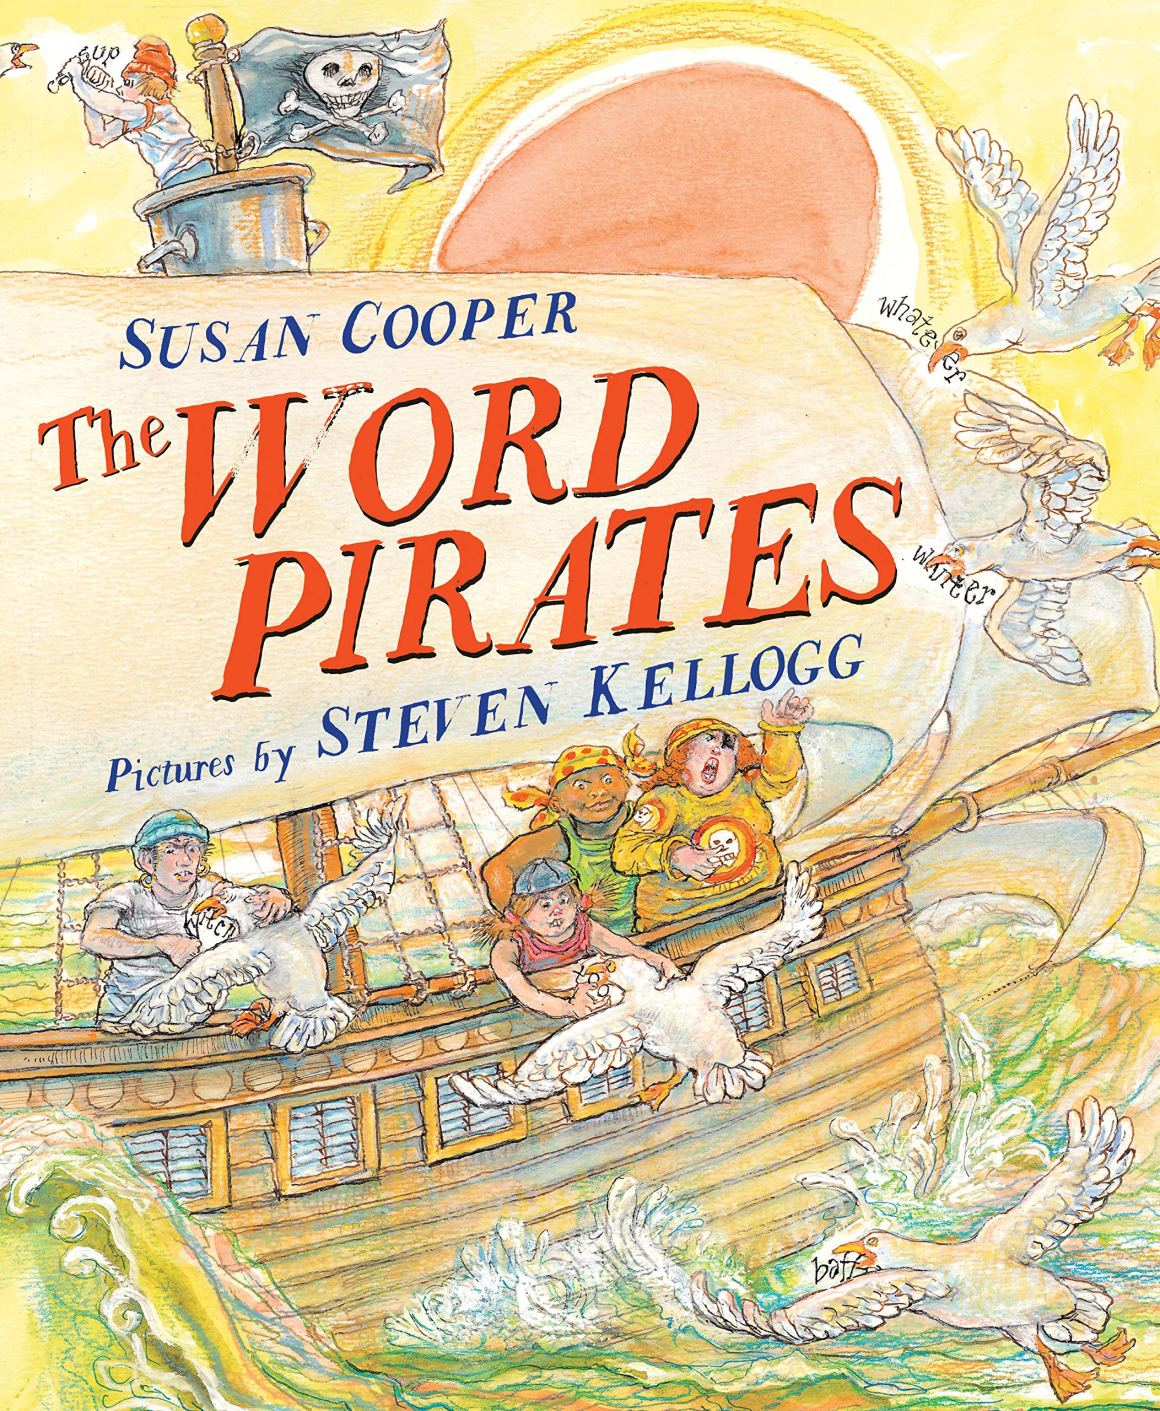 Best fantasy books for kids: The Word Pirates